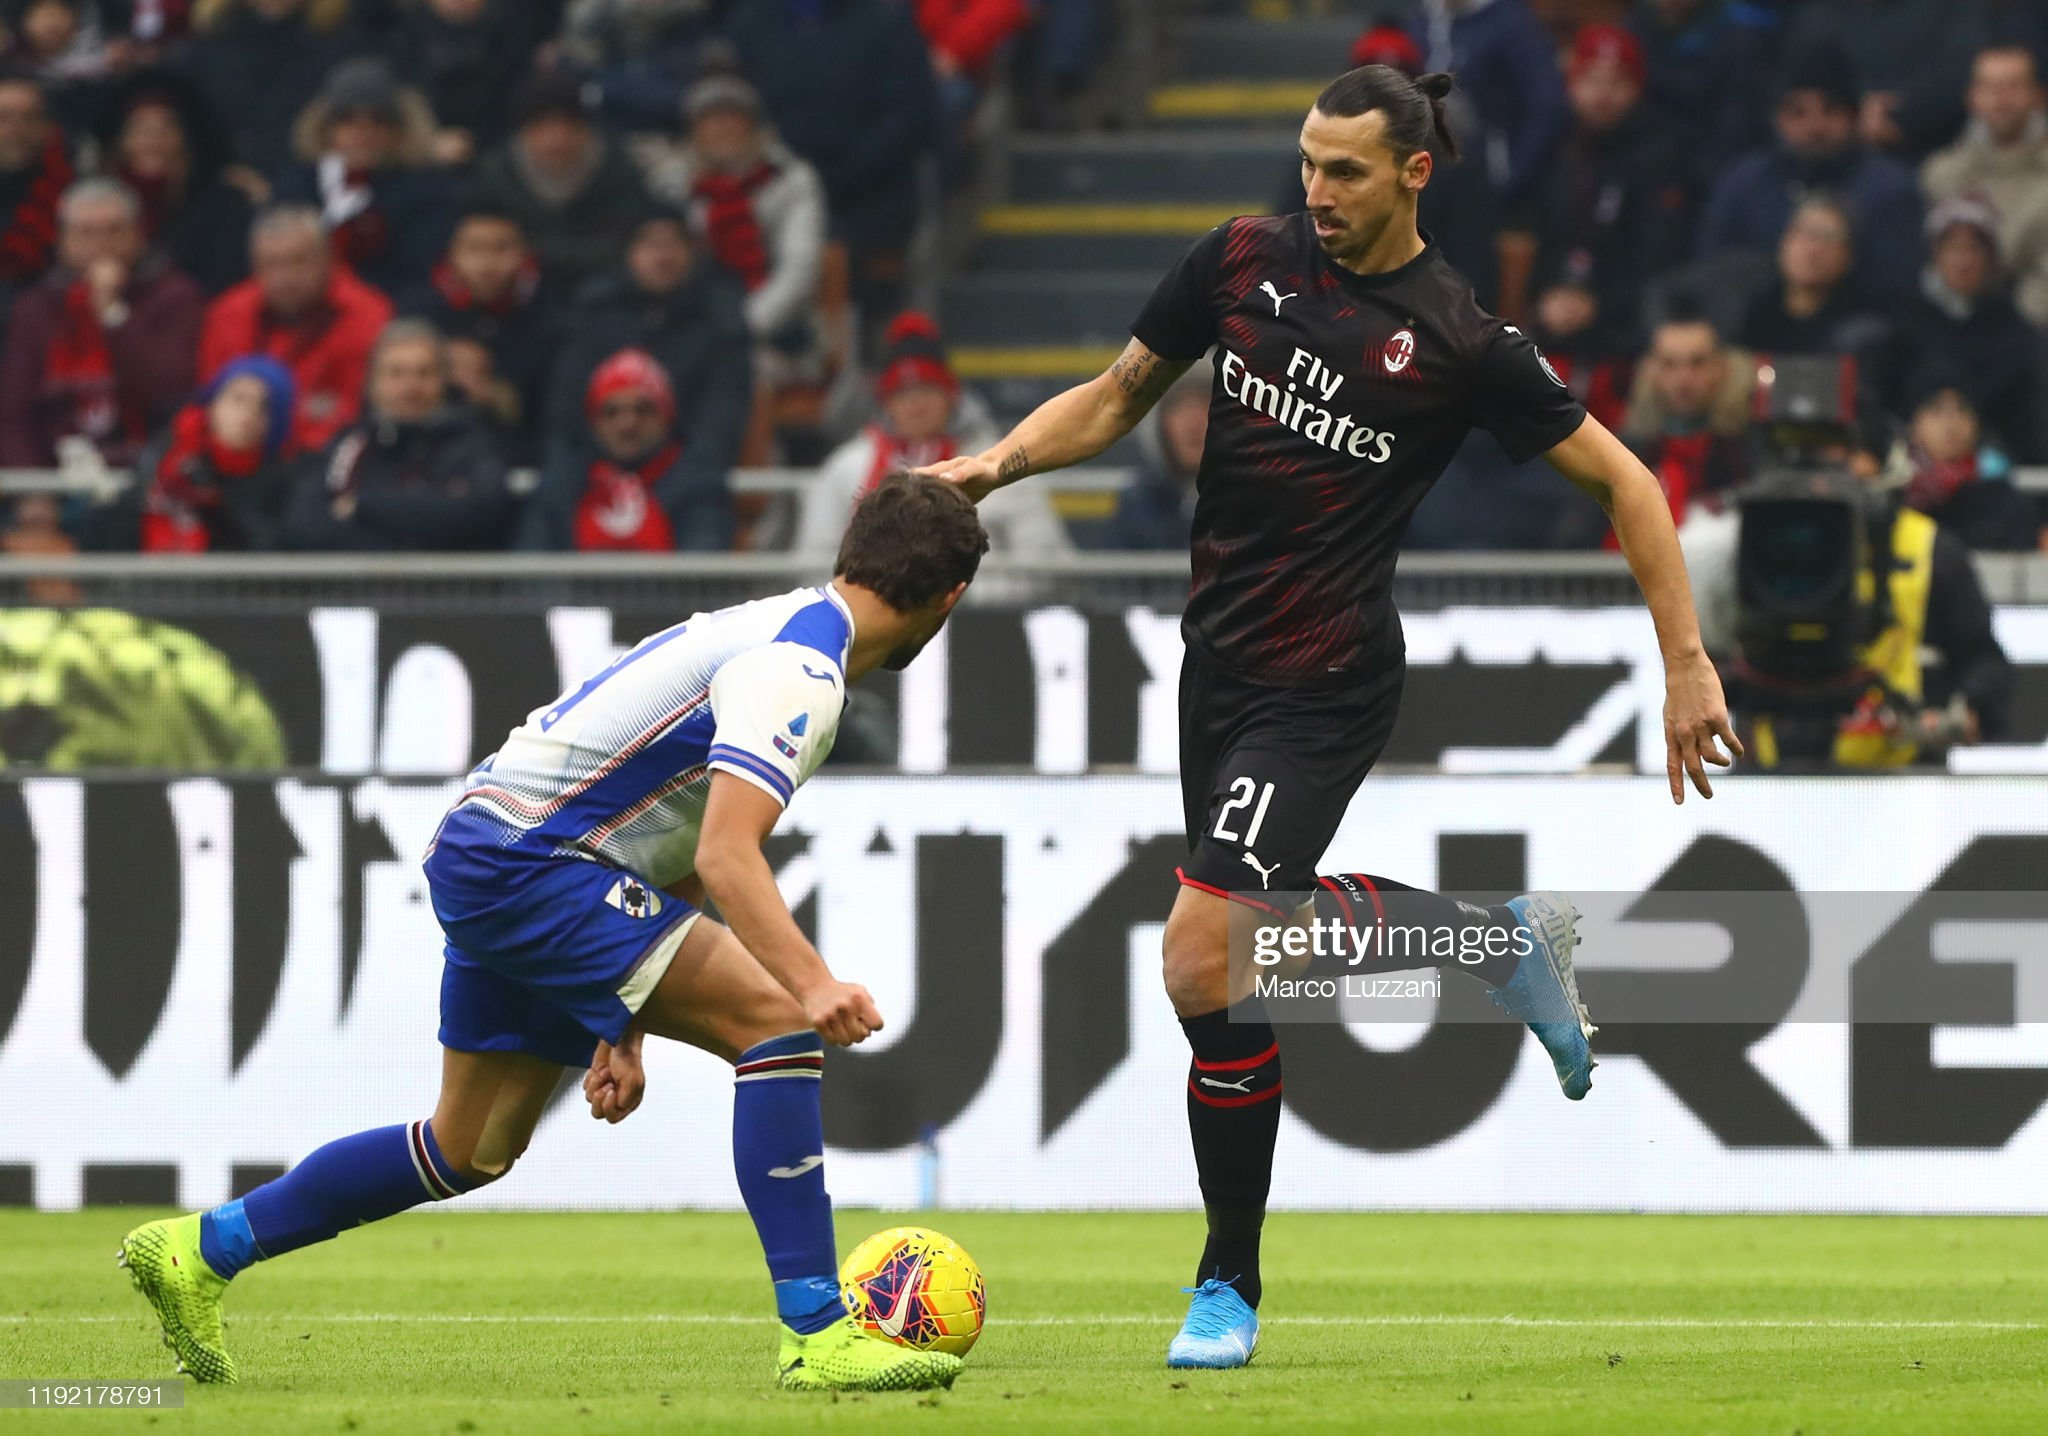 Sampdoria vs AC Milan Preview, prediction and odds